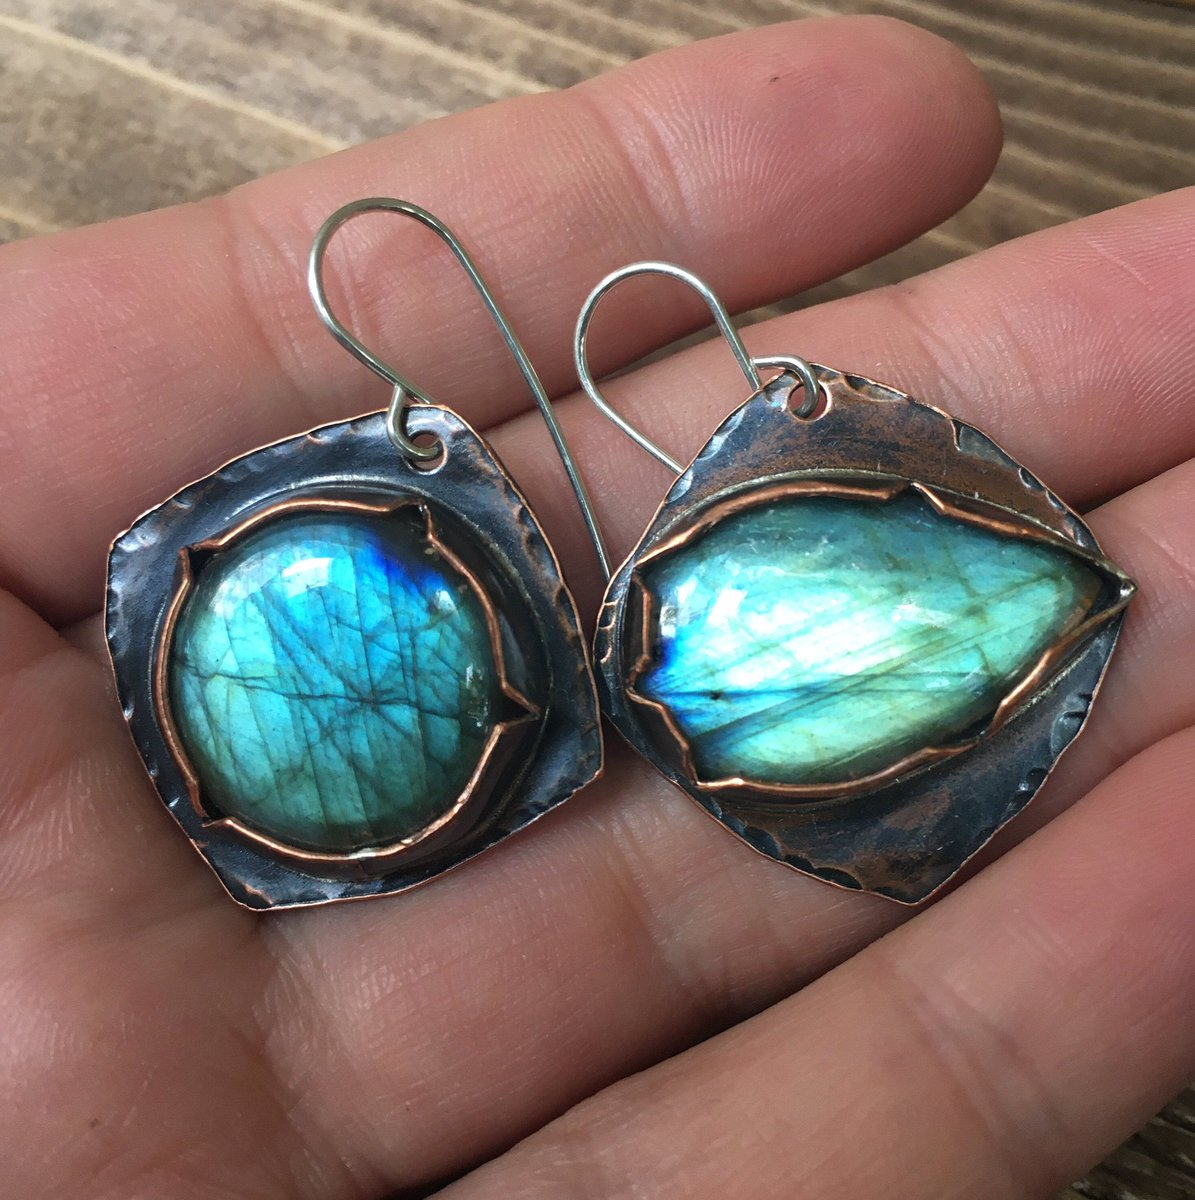 A few fresh pairs of earrings are now available on #etsy . #metalsmithing #labradoriteearrings #copperearrings #copperjewelry #copperjewellery #oneofakind #oneofakindjewelry #medievalstyle #vikingstyle #rustic #rusticjewelry #rusticjewellery #sigilstonestudio #estoniandesigner pic.twitter.com/q5cijQAmho